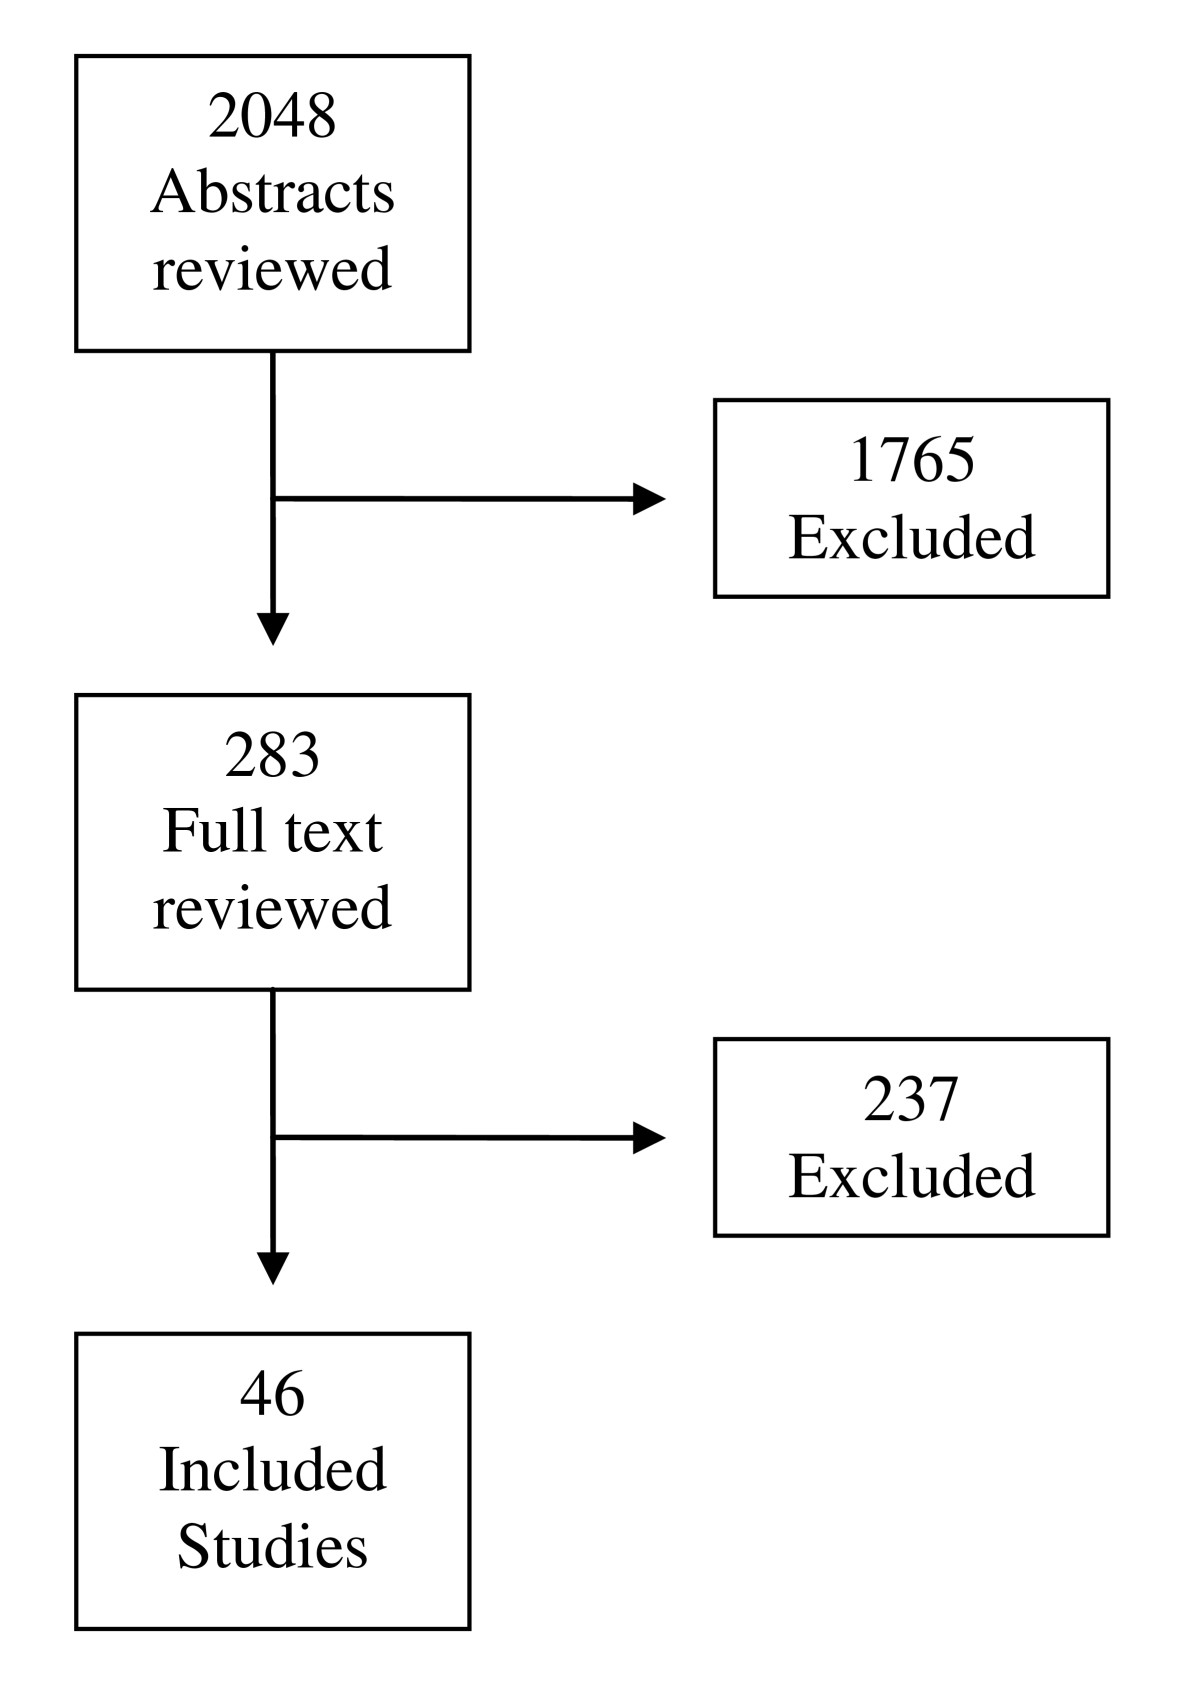 https://static-content.springer.com/image/art%3A10.1186%2F1471-2393-11-84/MediaObjects/12884_2010_Article_433_Fig1_HTML.jpg